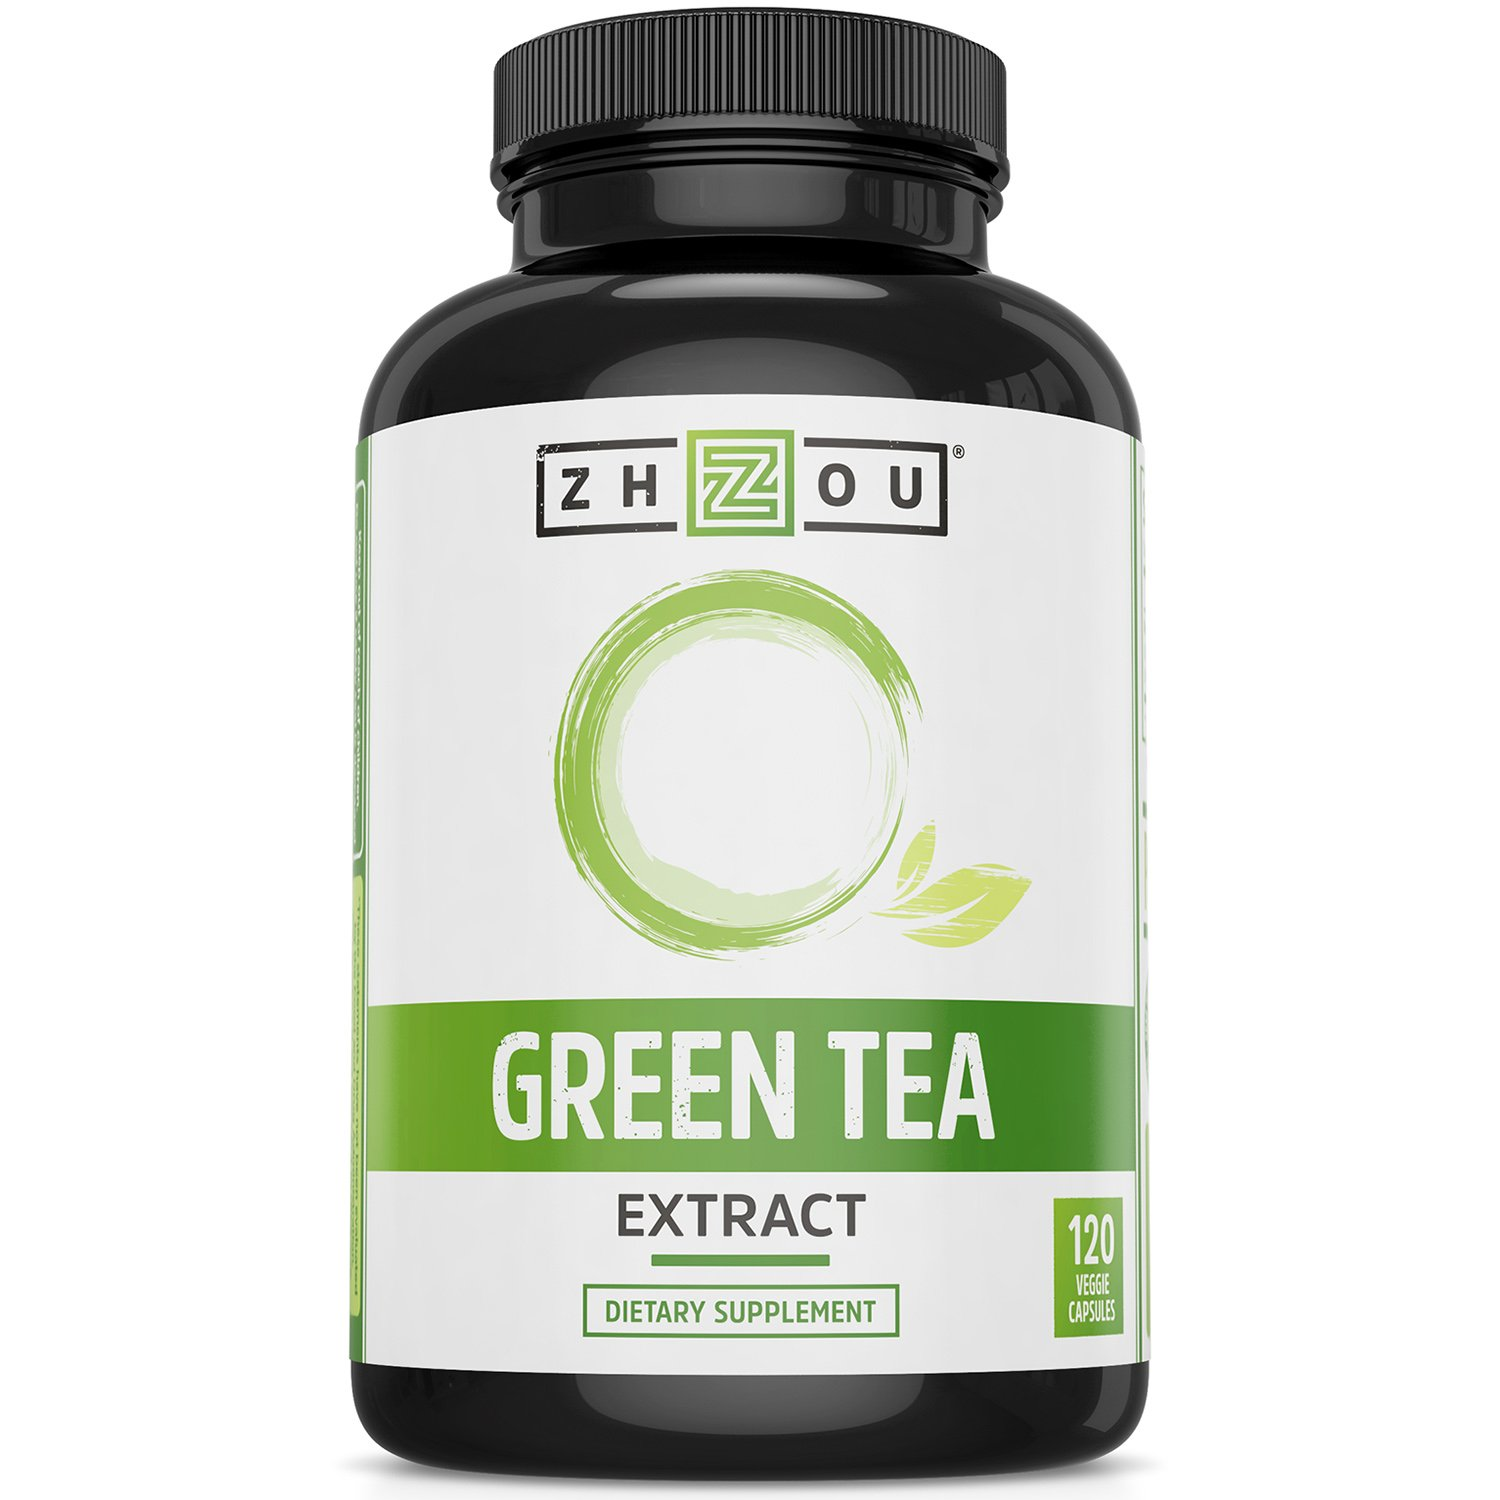 Extract Supplement Healthy Support Metabolism